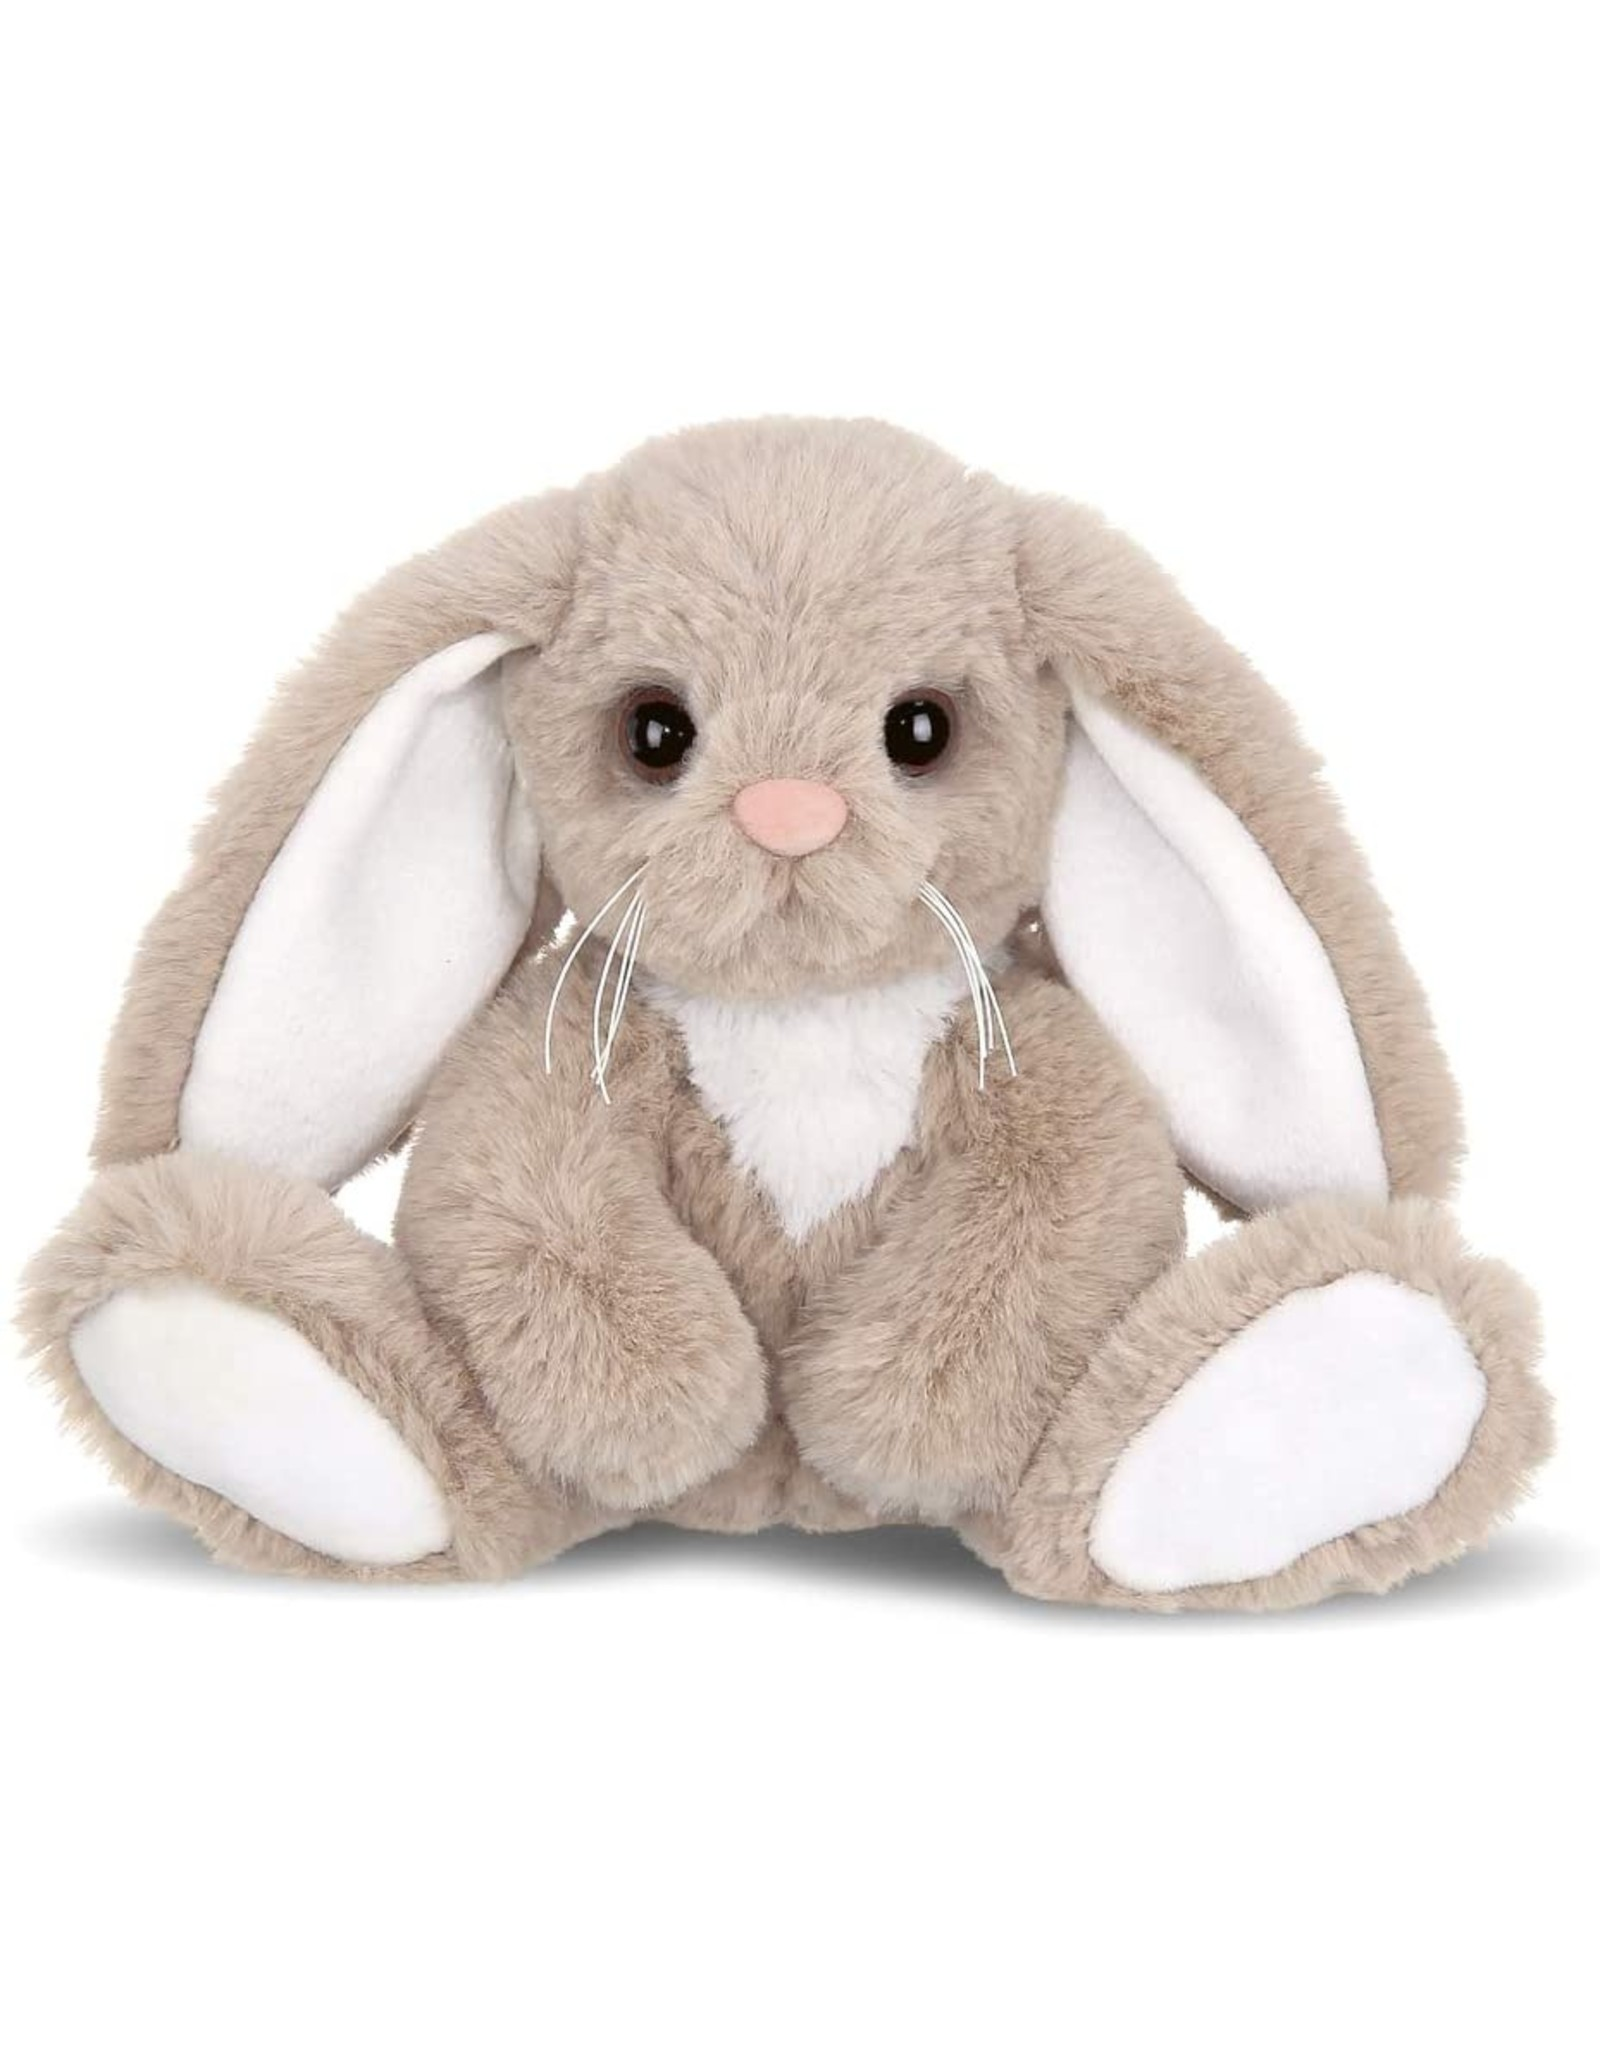 Lil' Boomer the Taupe & White Bunny